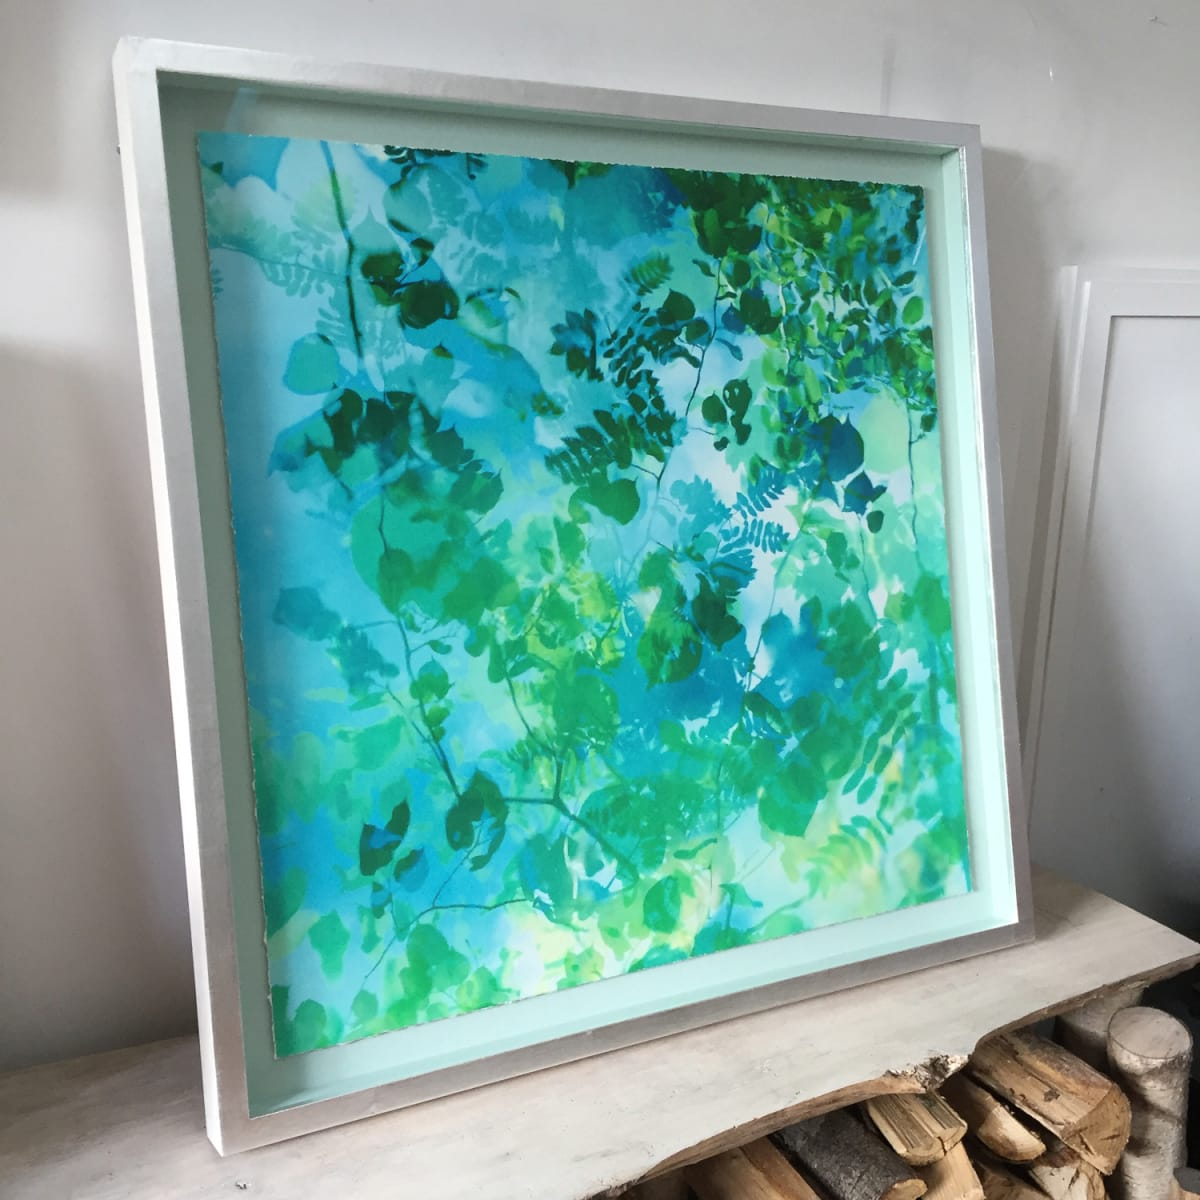 Rain dance 8 | 70cm framed print |1 from an edition of 3. by caroline fraser